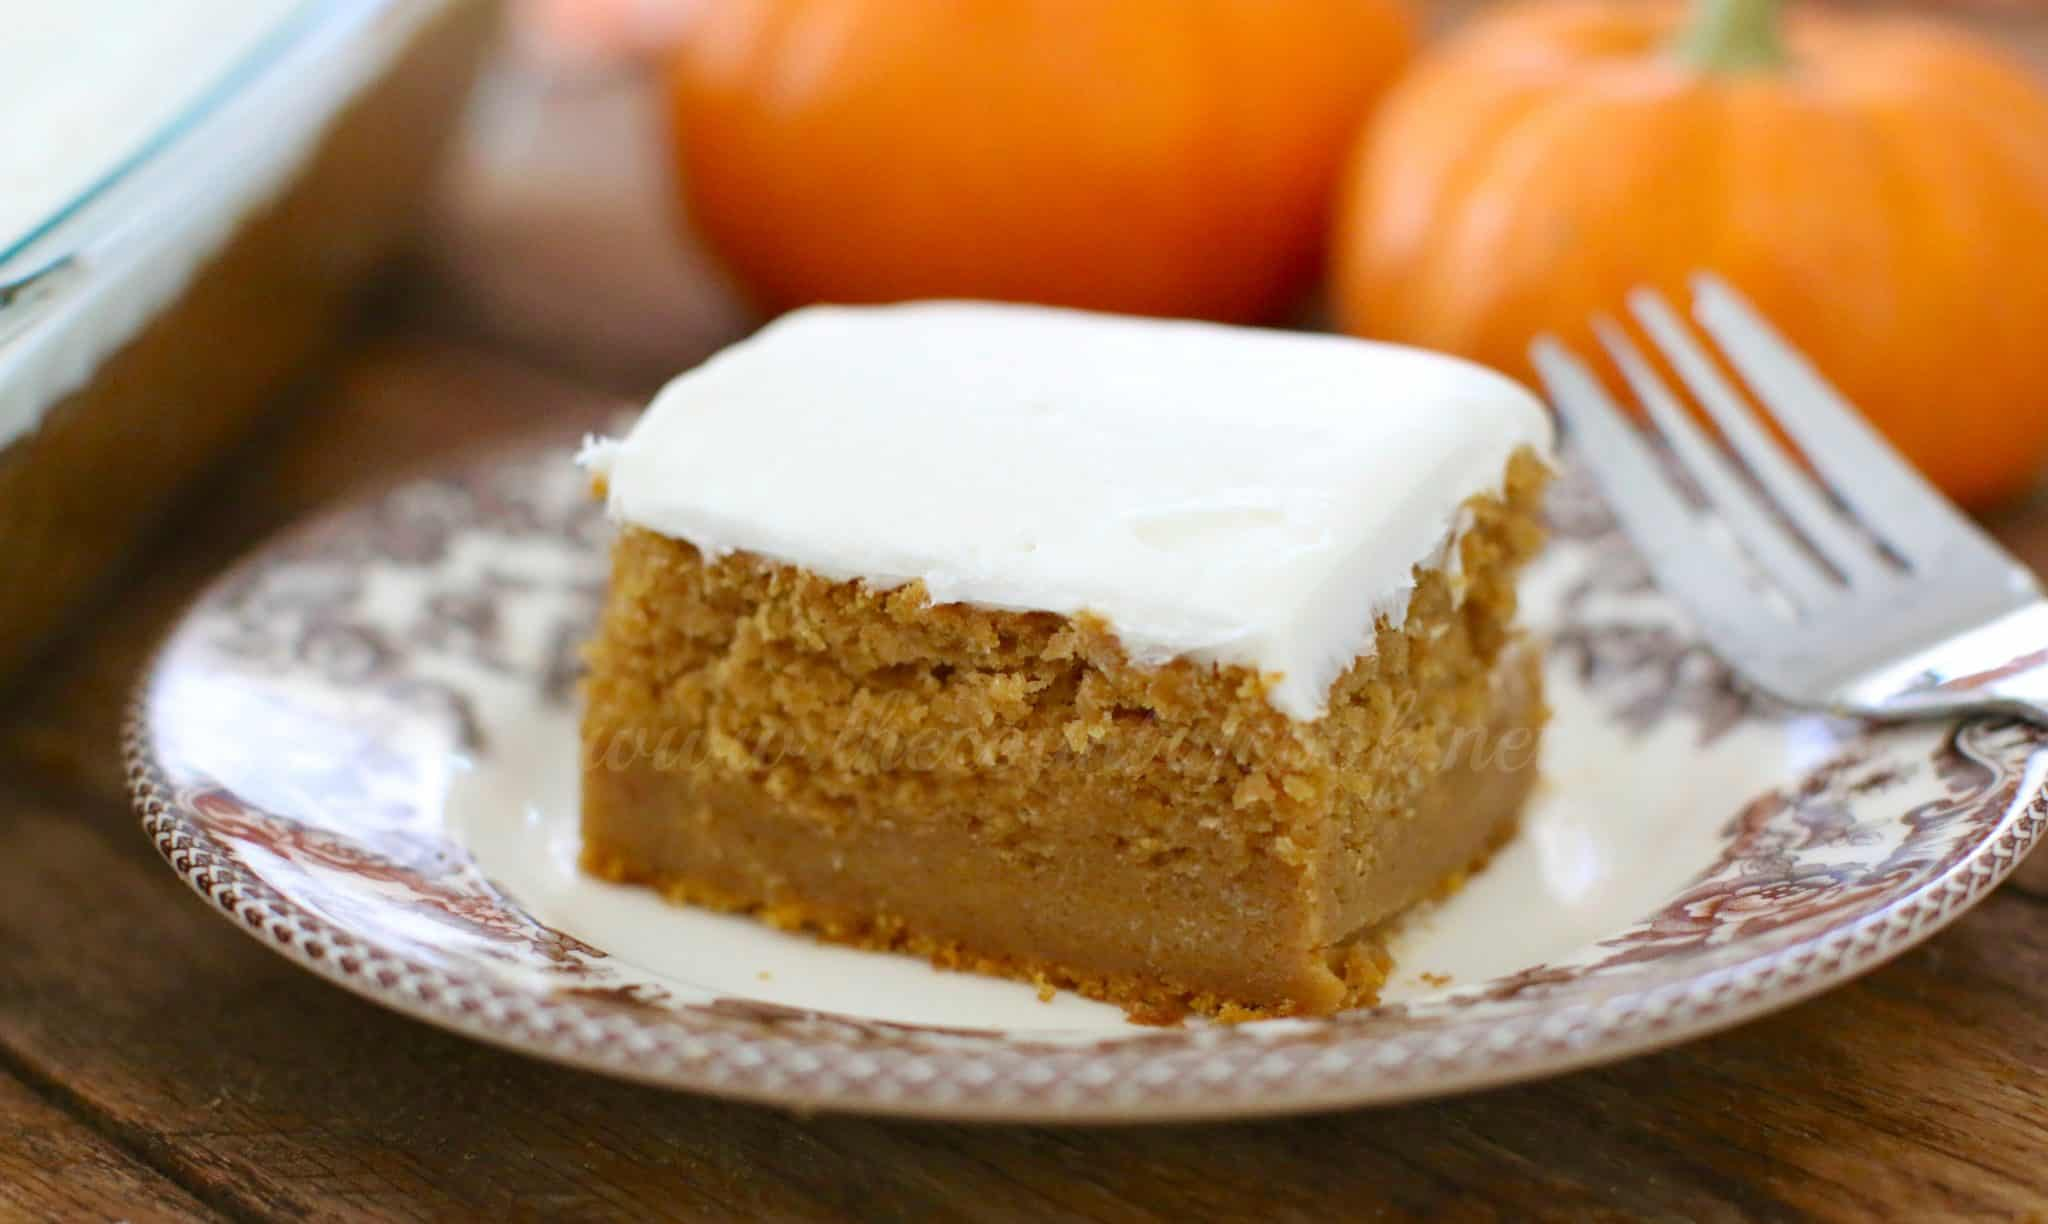 What Can I Make With Canned Pumpkin And Cake Mix